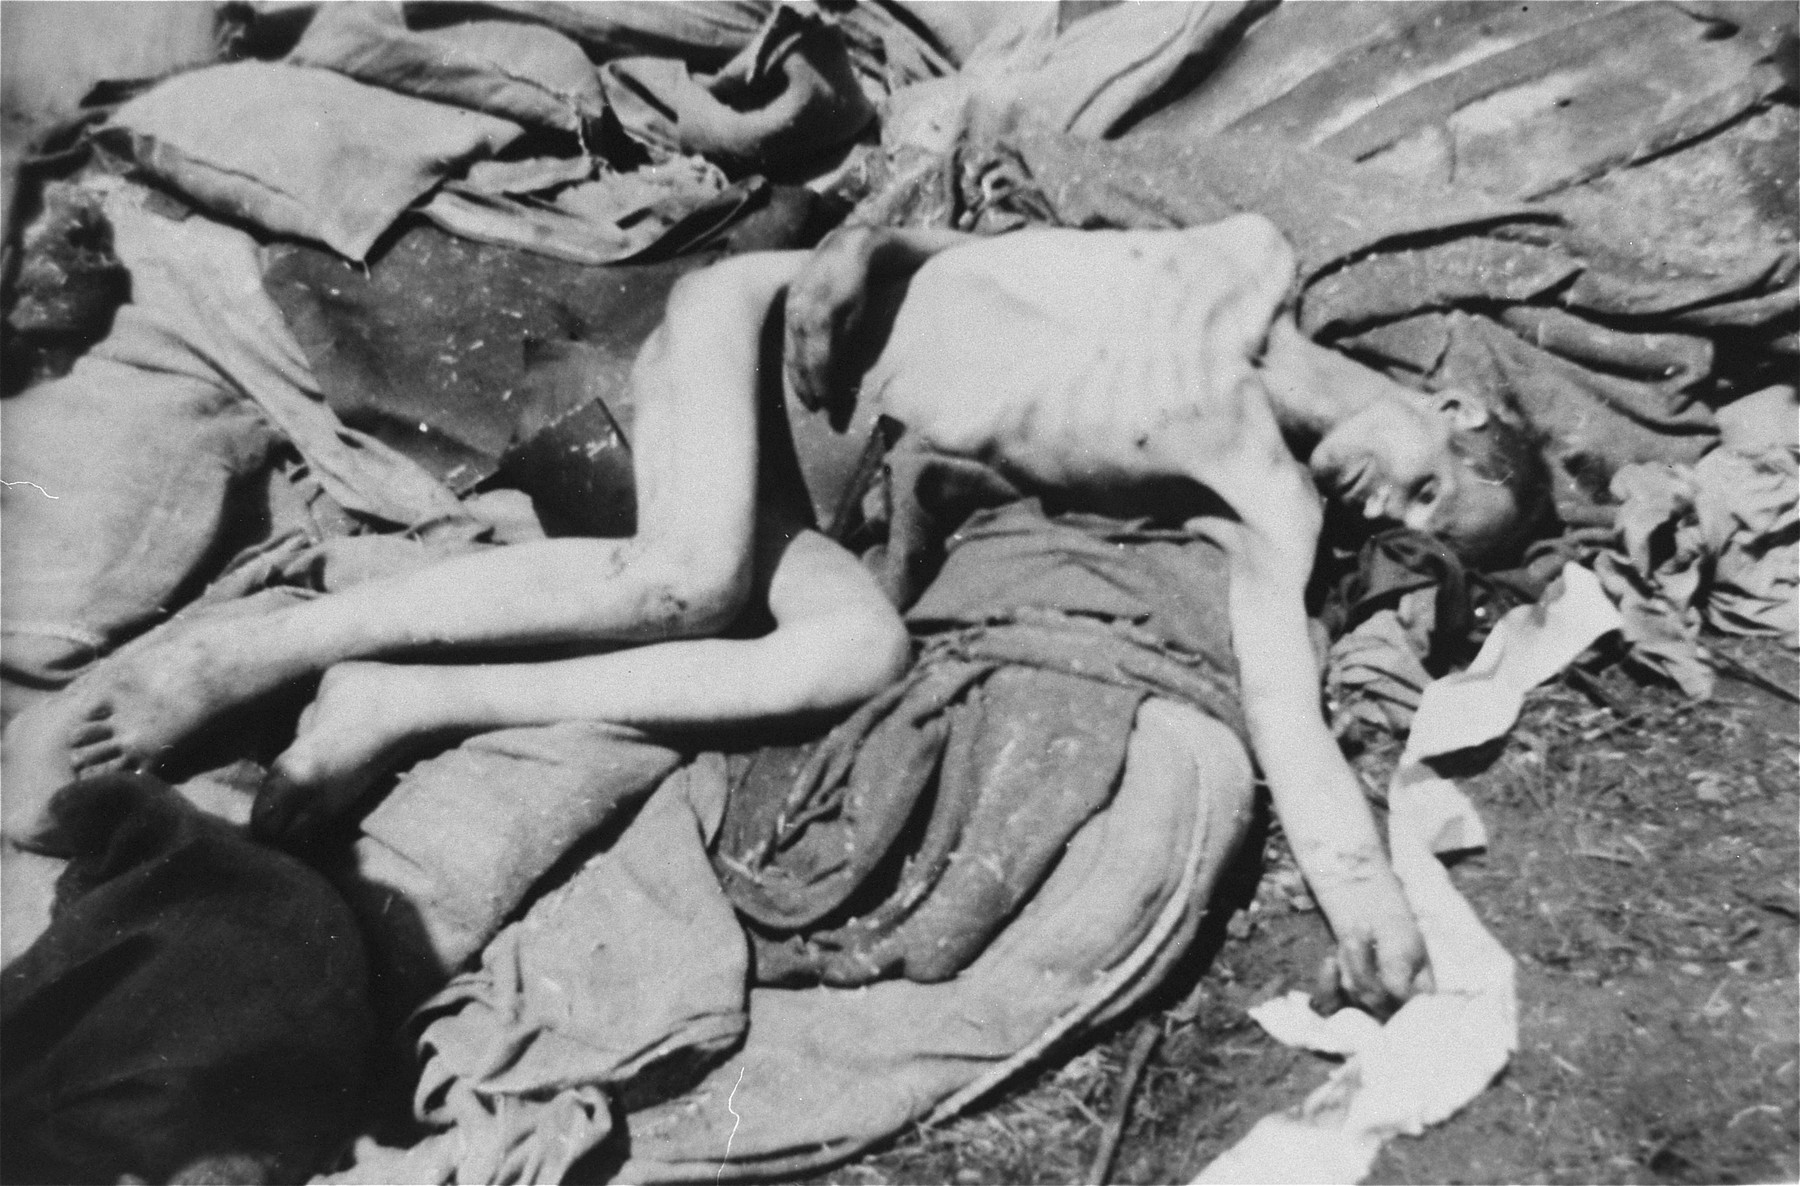 A corpse in Ebensee after liberation.